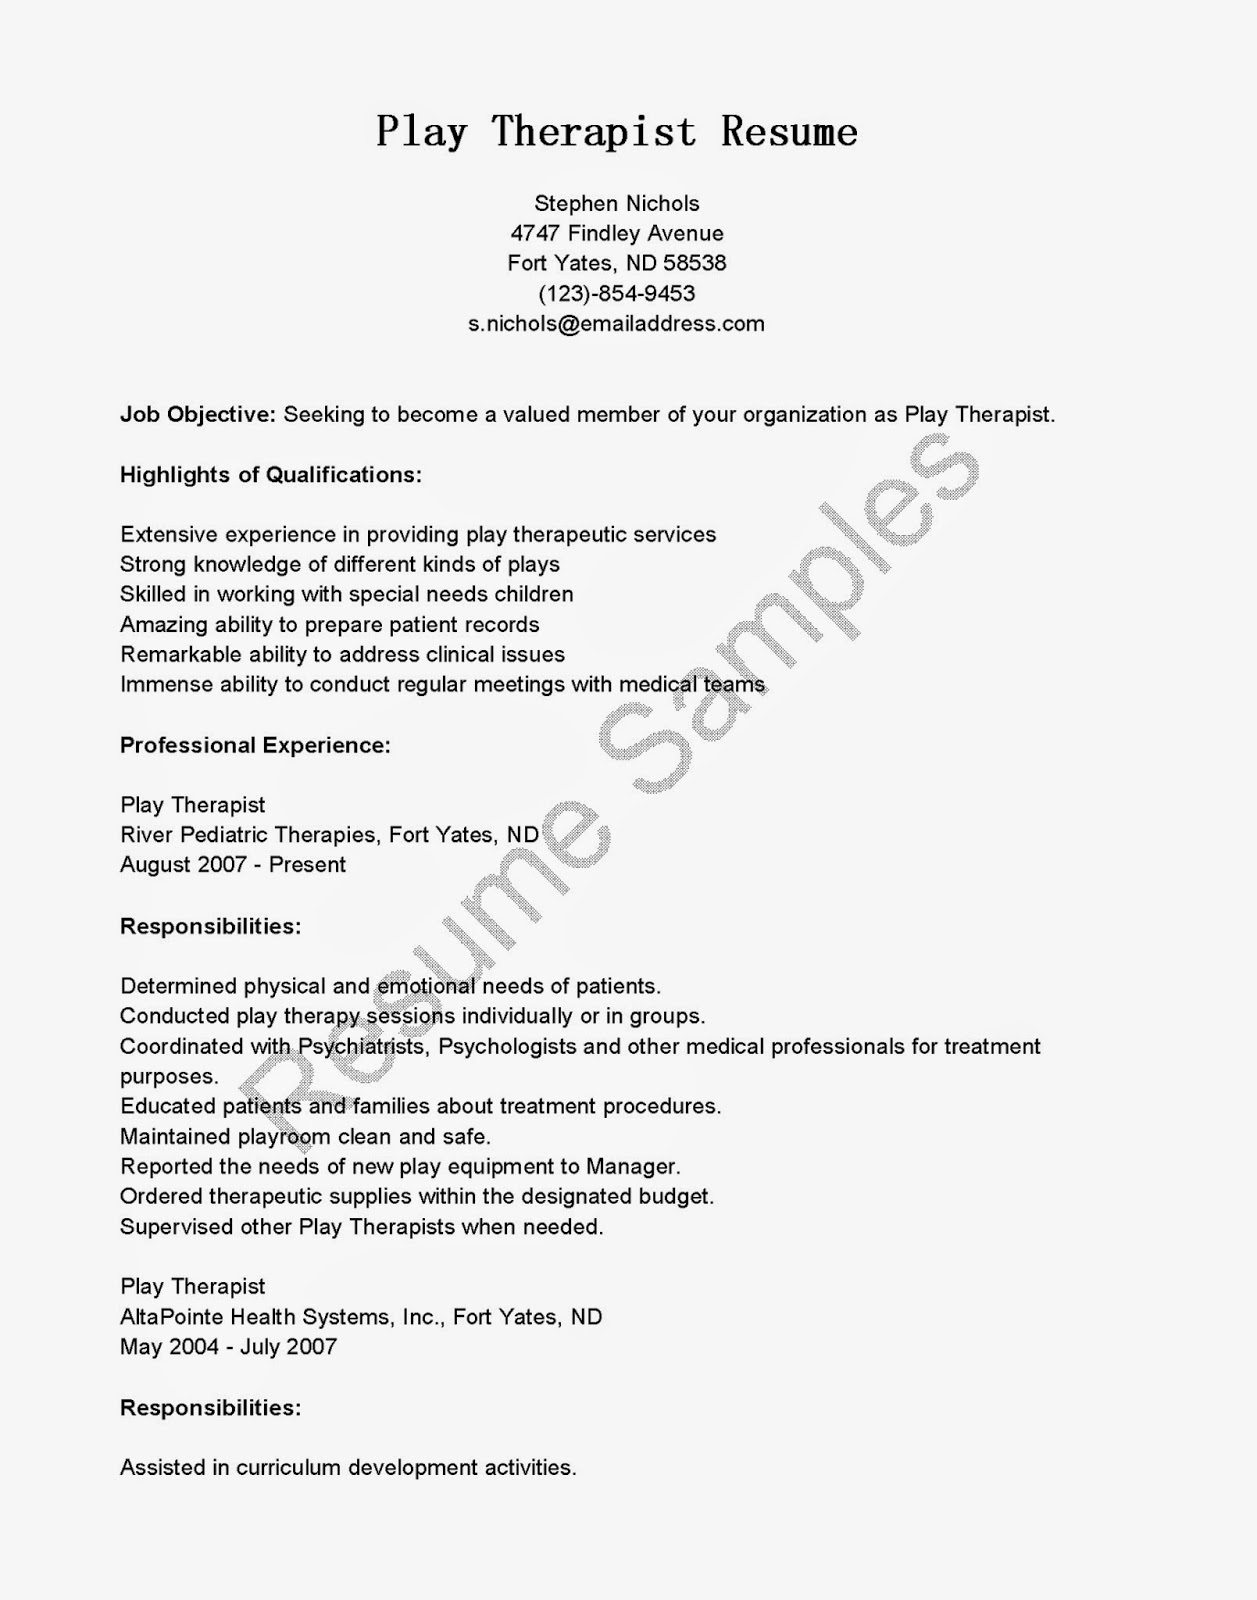 Resume Samples Play Therapist Resume